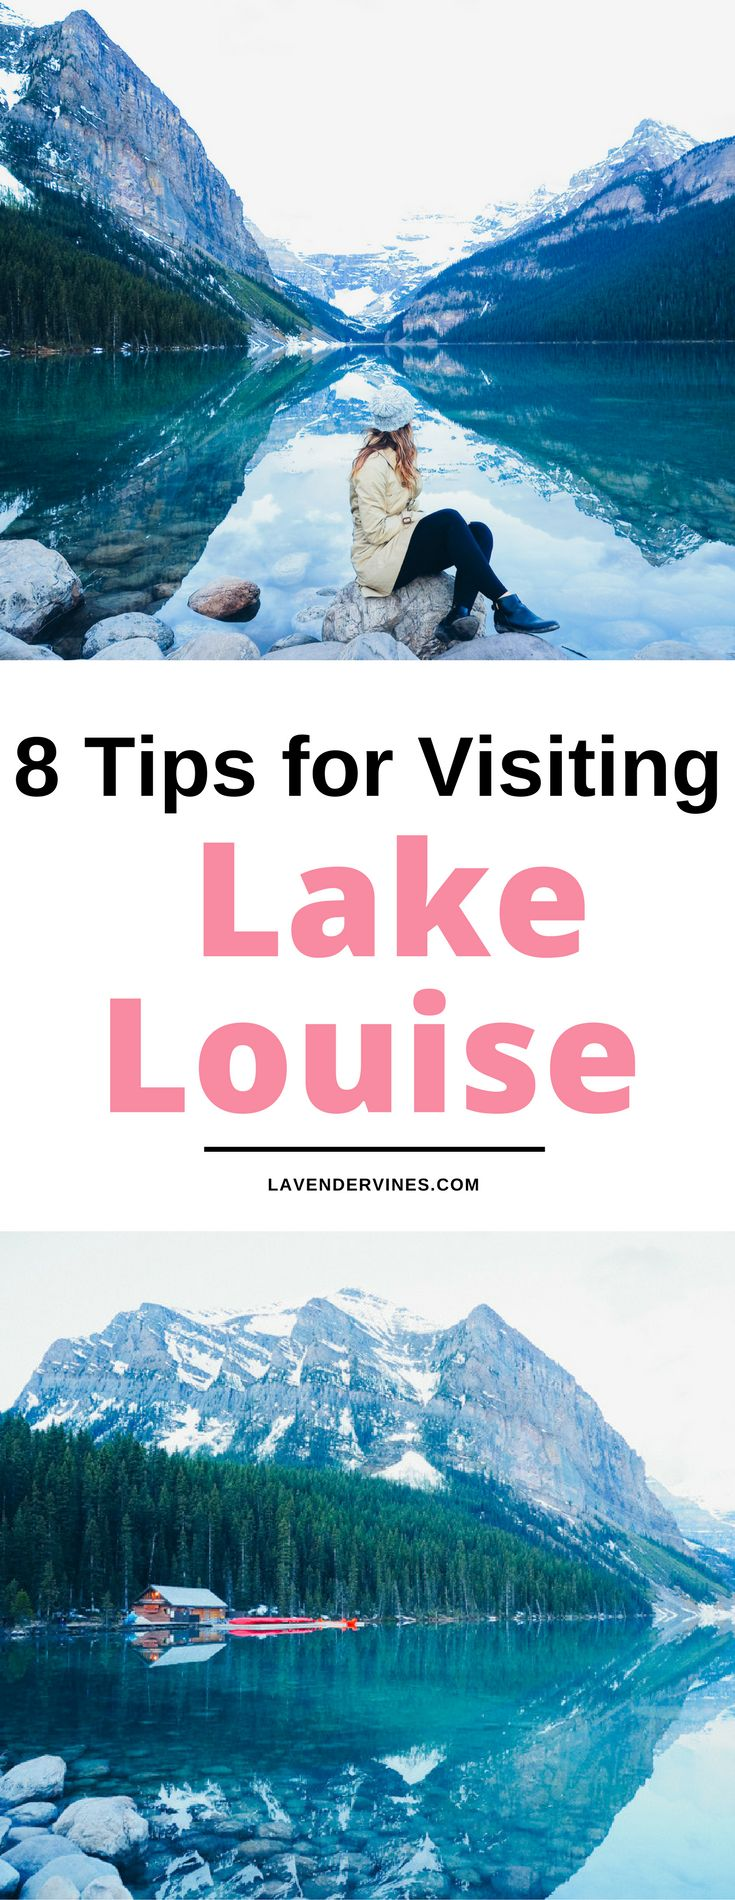 Lake Louise, Banff National Park, things to do Banff National Park, Banff National Park hiking, Alberta Canada travel #Canada